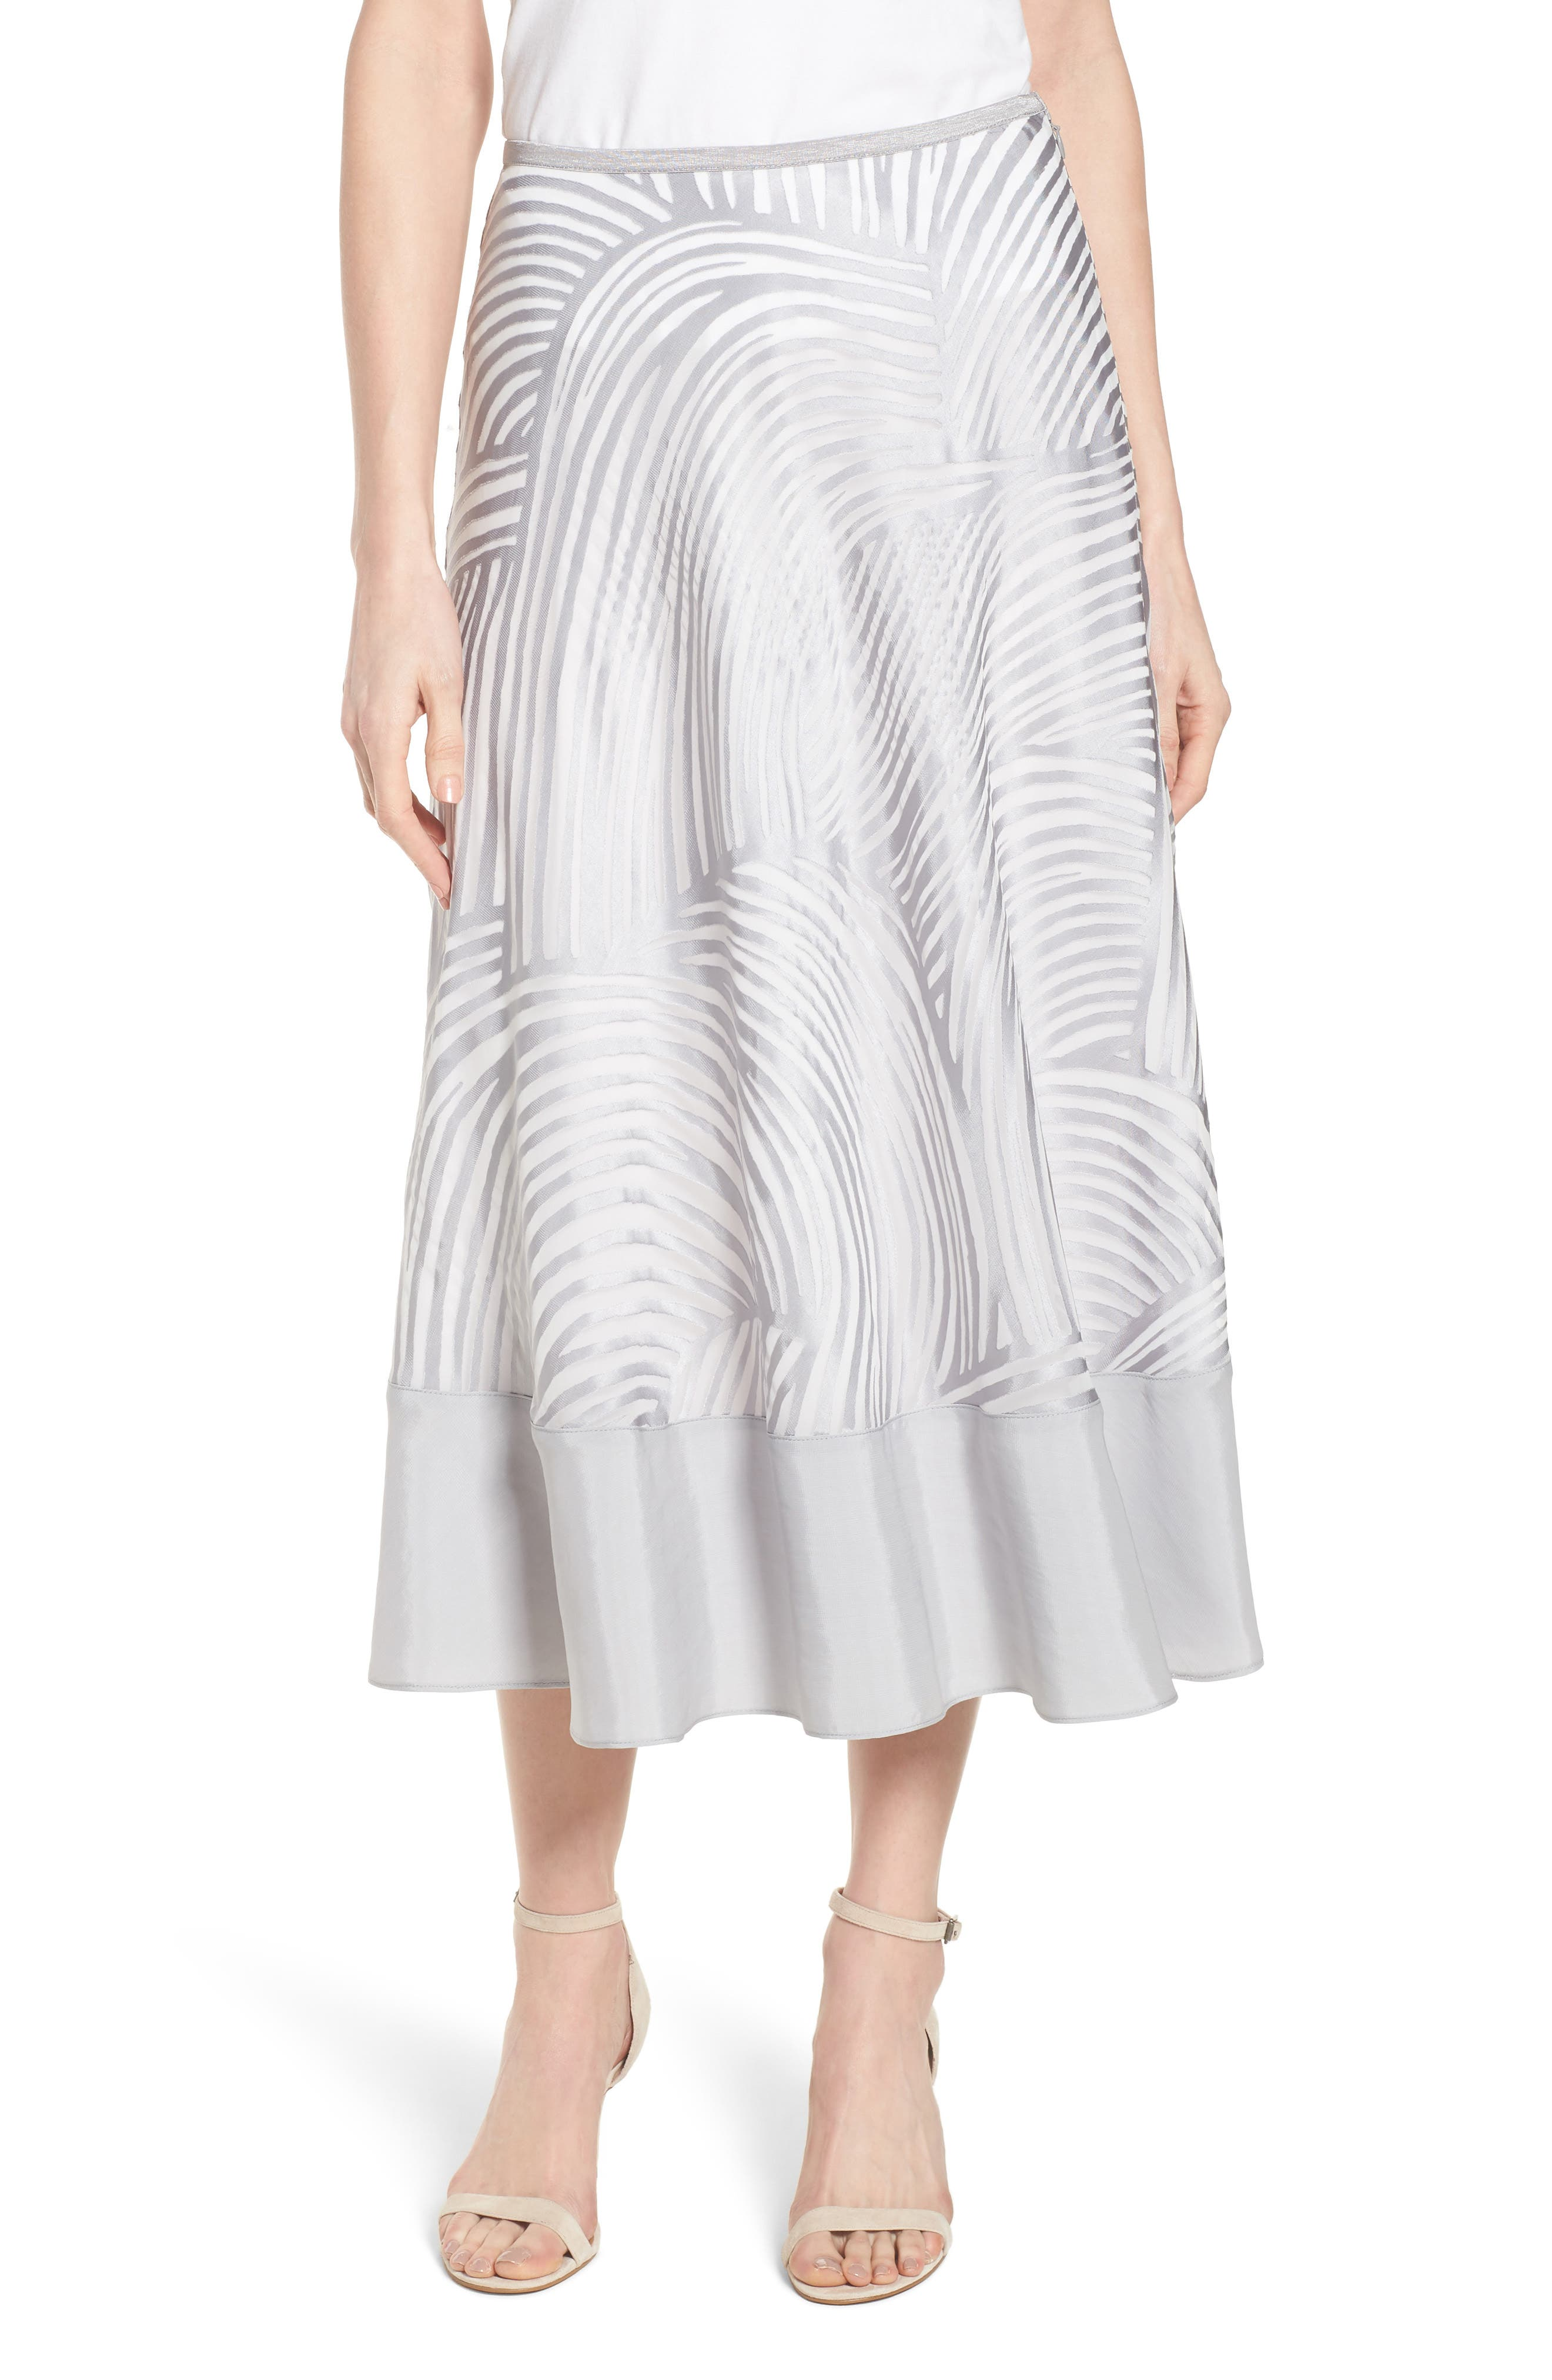 NIC+ZOE Bohemian Groves Skirt